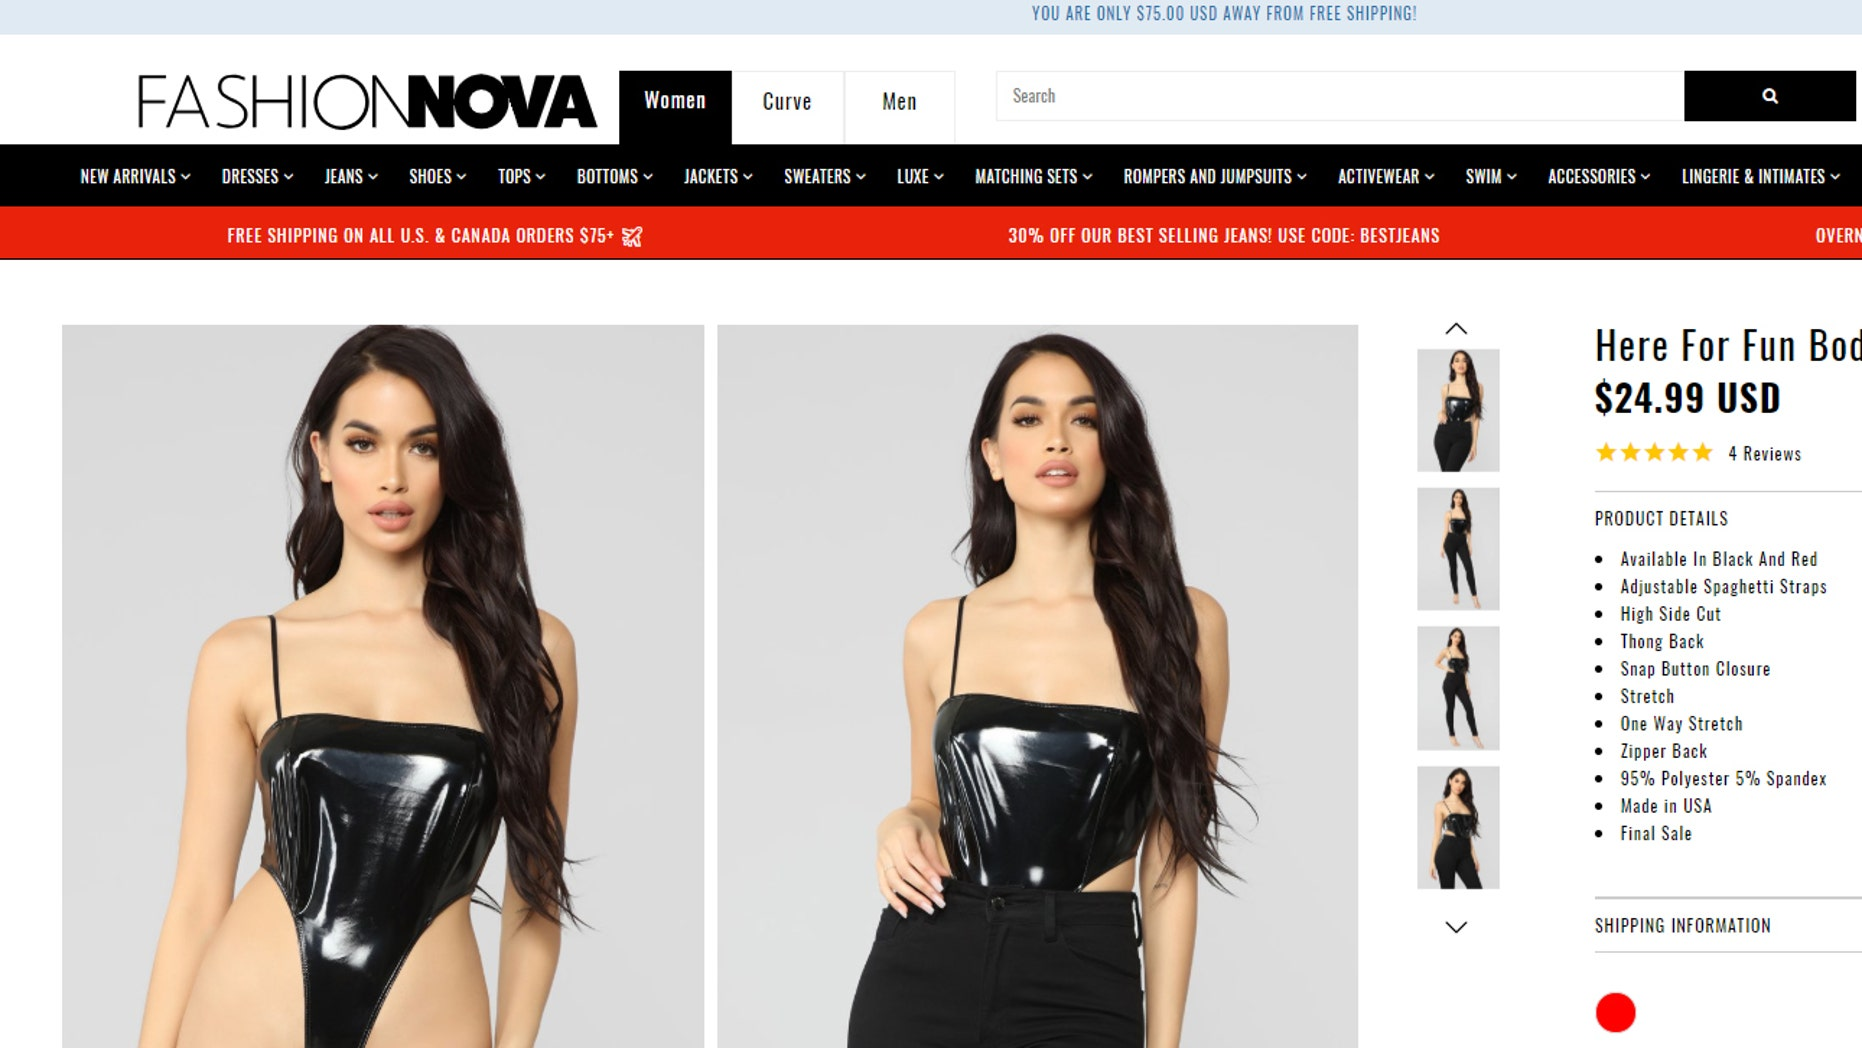 The online fashion brand, infamous for introducing the Internet to such styles as cut-out pants and lace-up jeans, has debuted yet another controversial look.